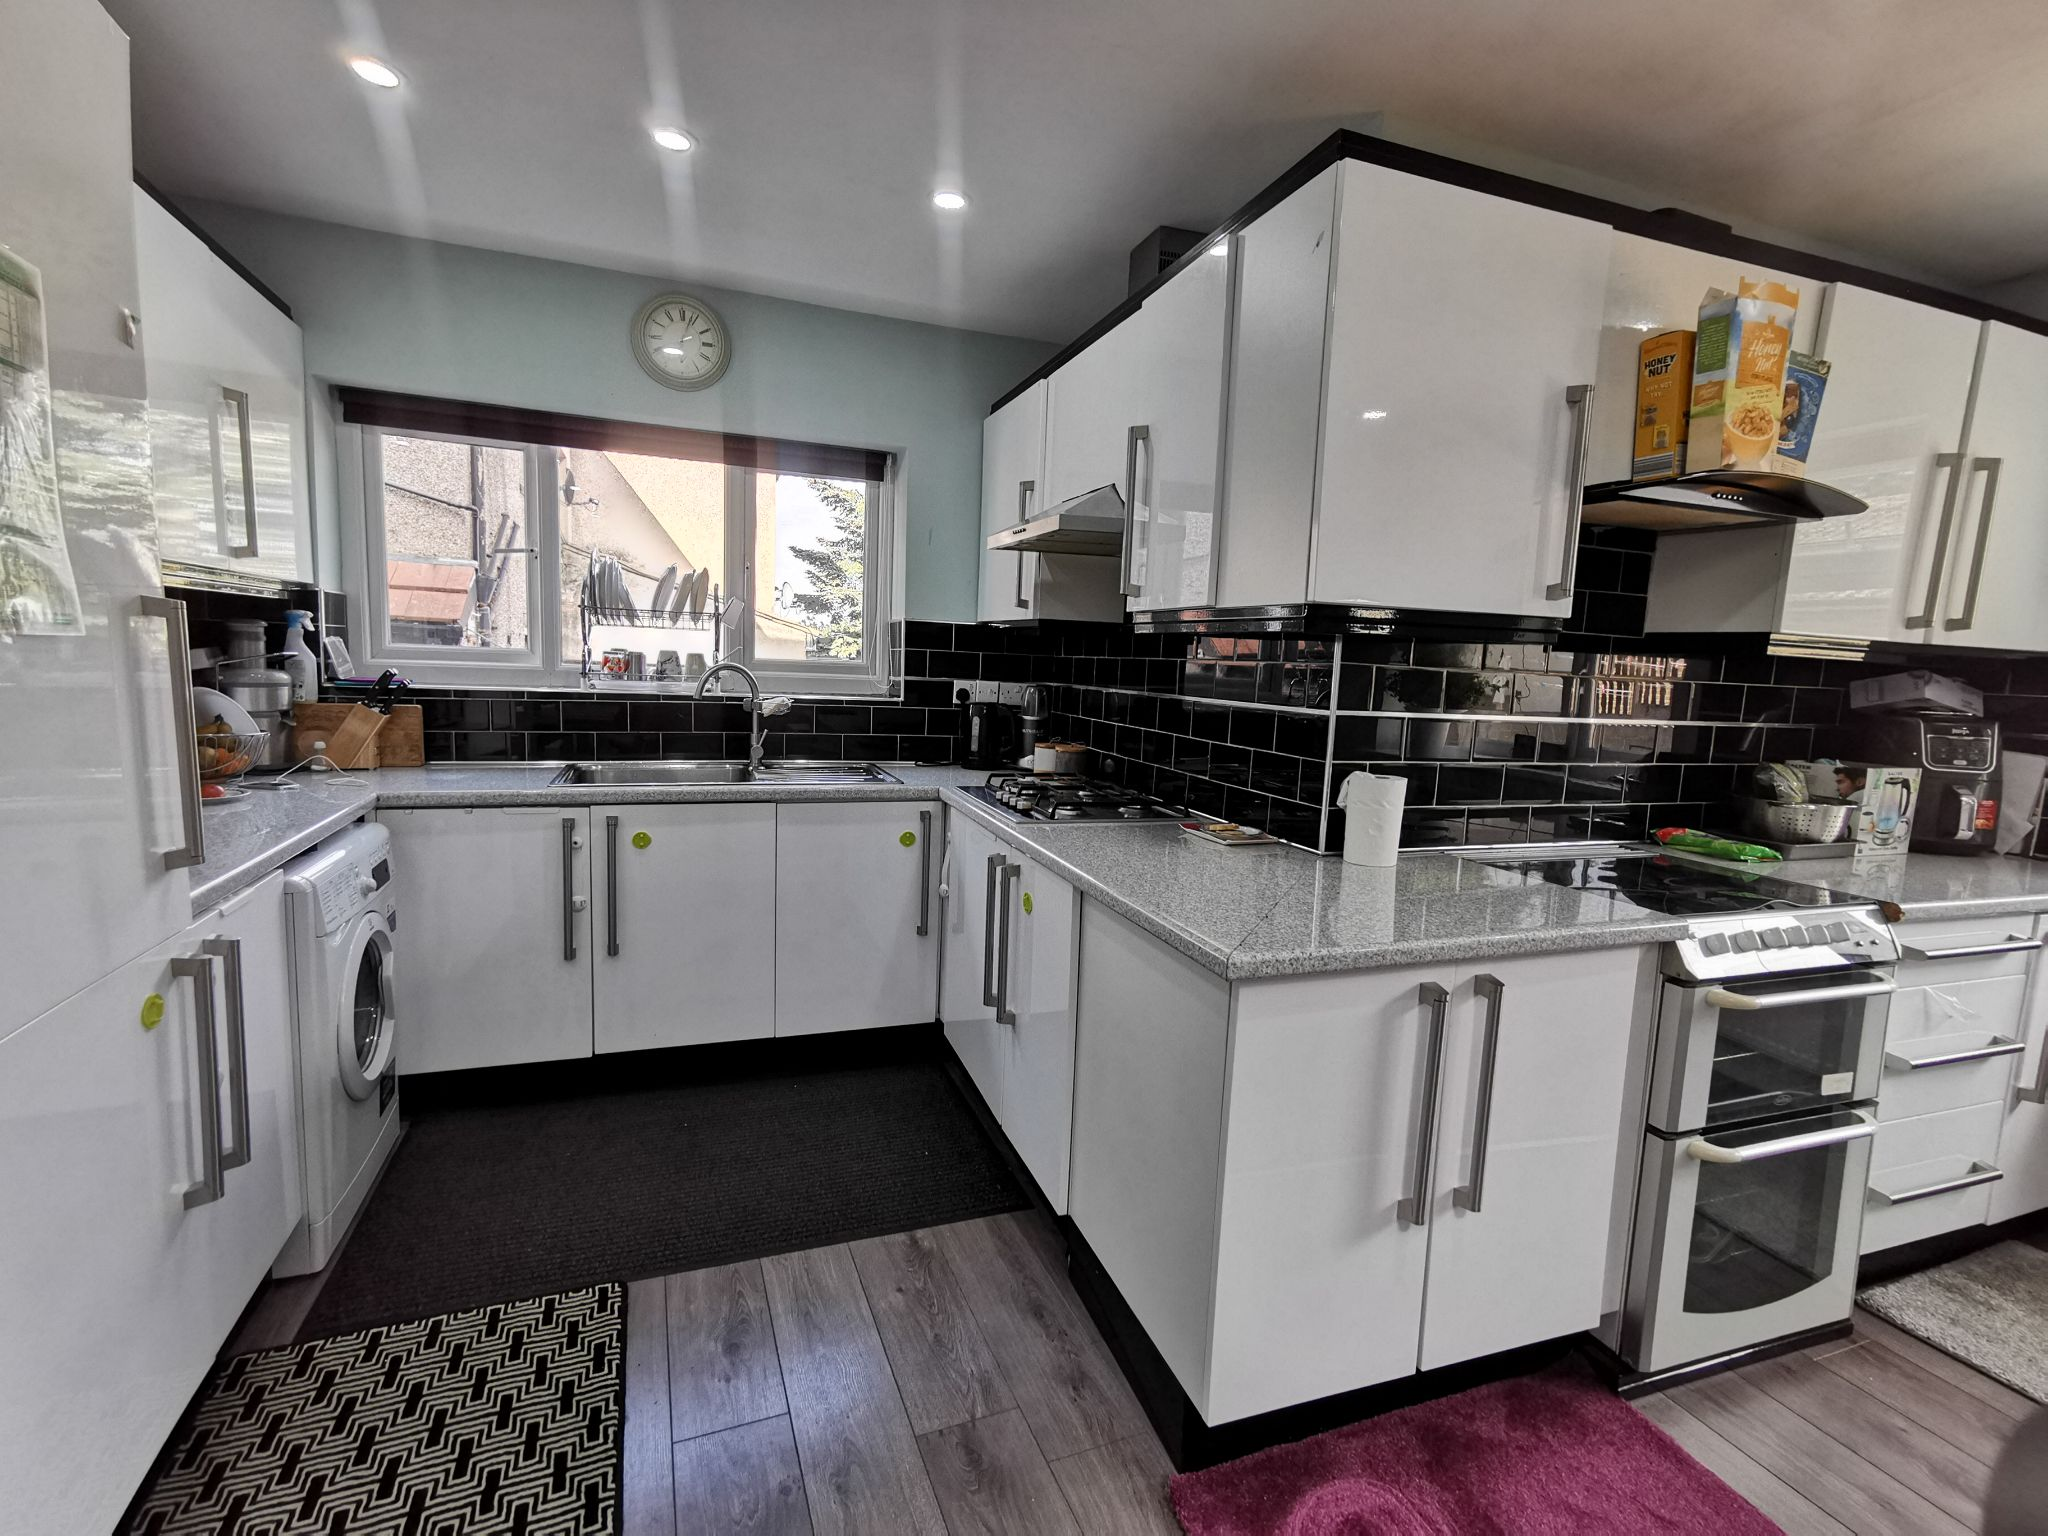 4 bedroom semi-detached house SSTC in Bradford - Photograph 4.